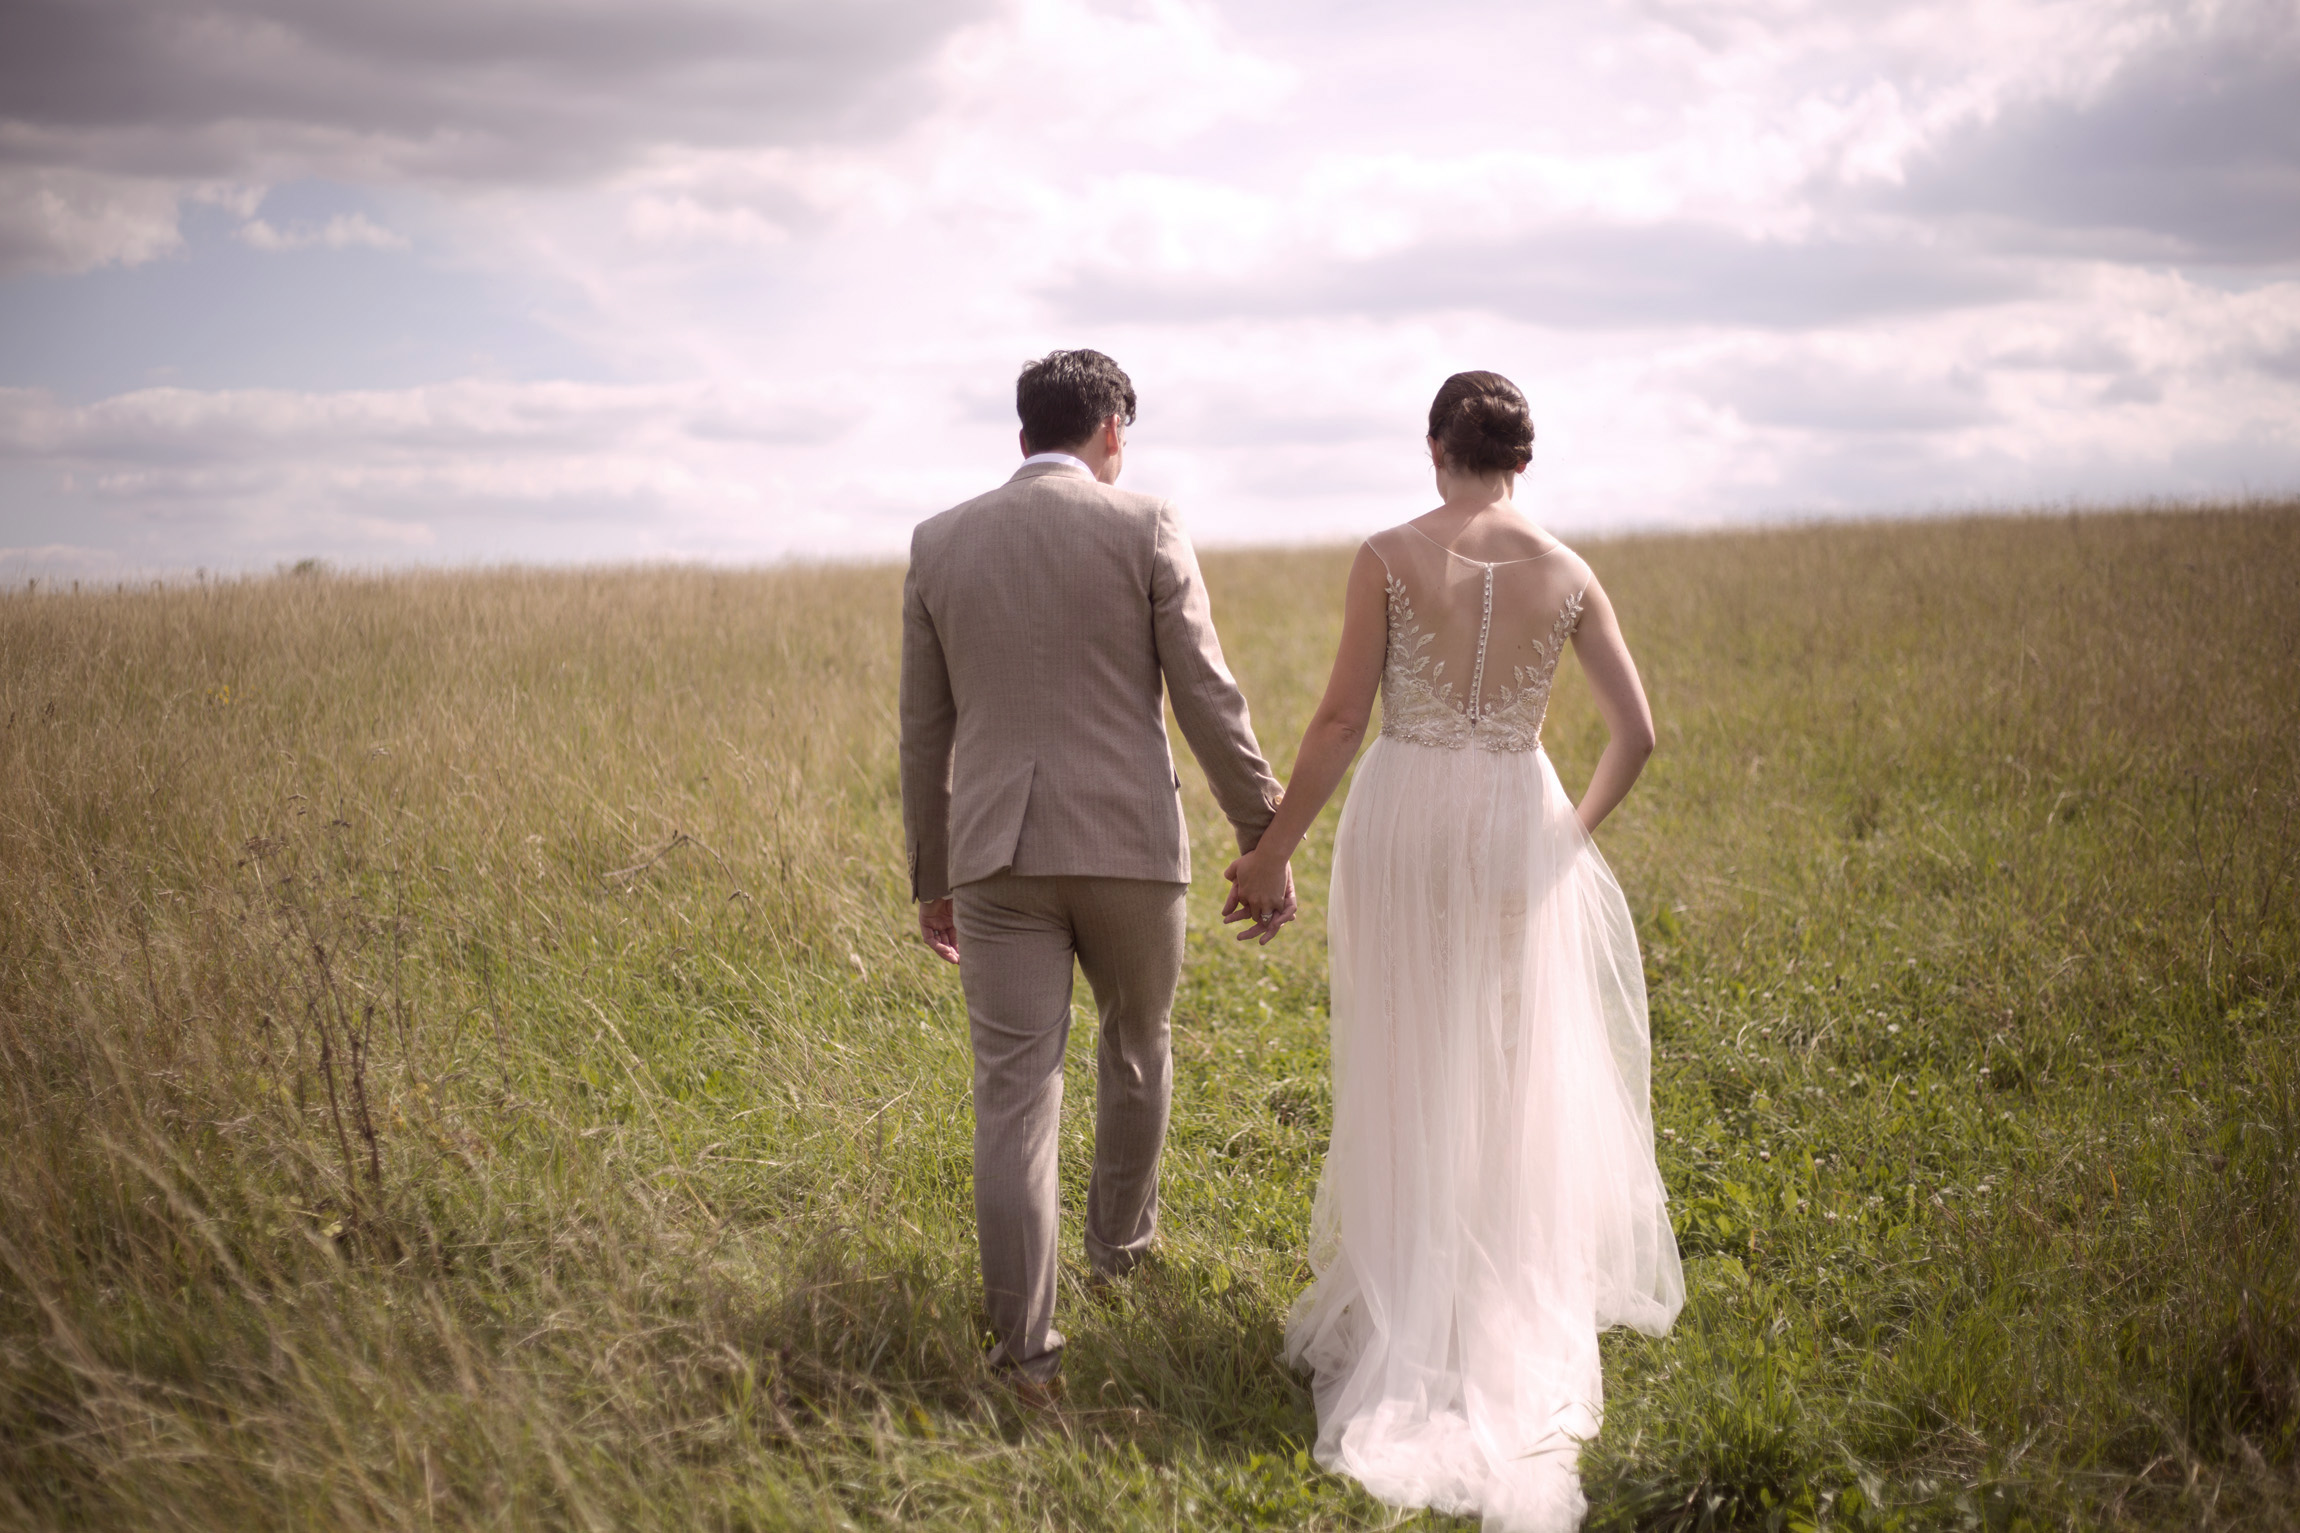 Newlyweds holding hands walking in a field at Cripps barn wedding photographer Gloucestershire